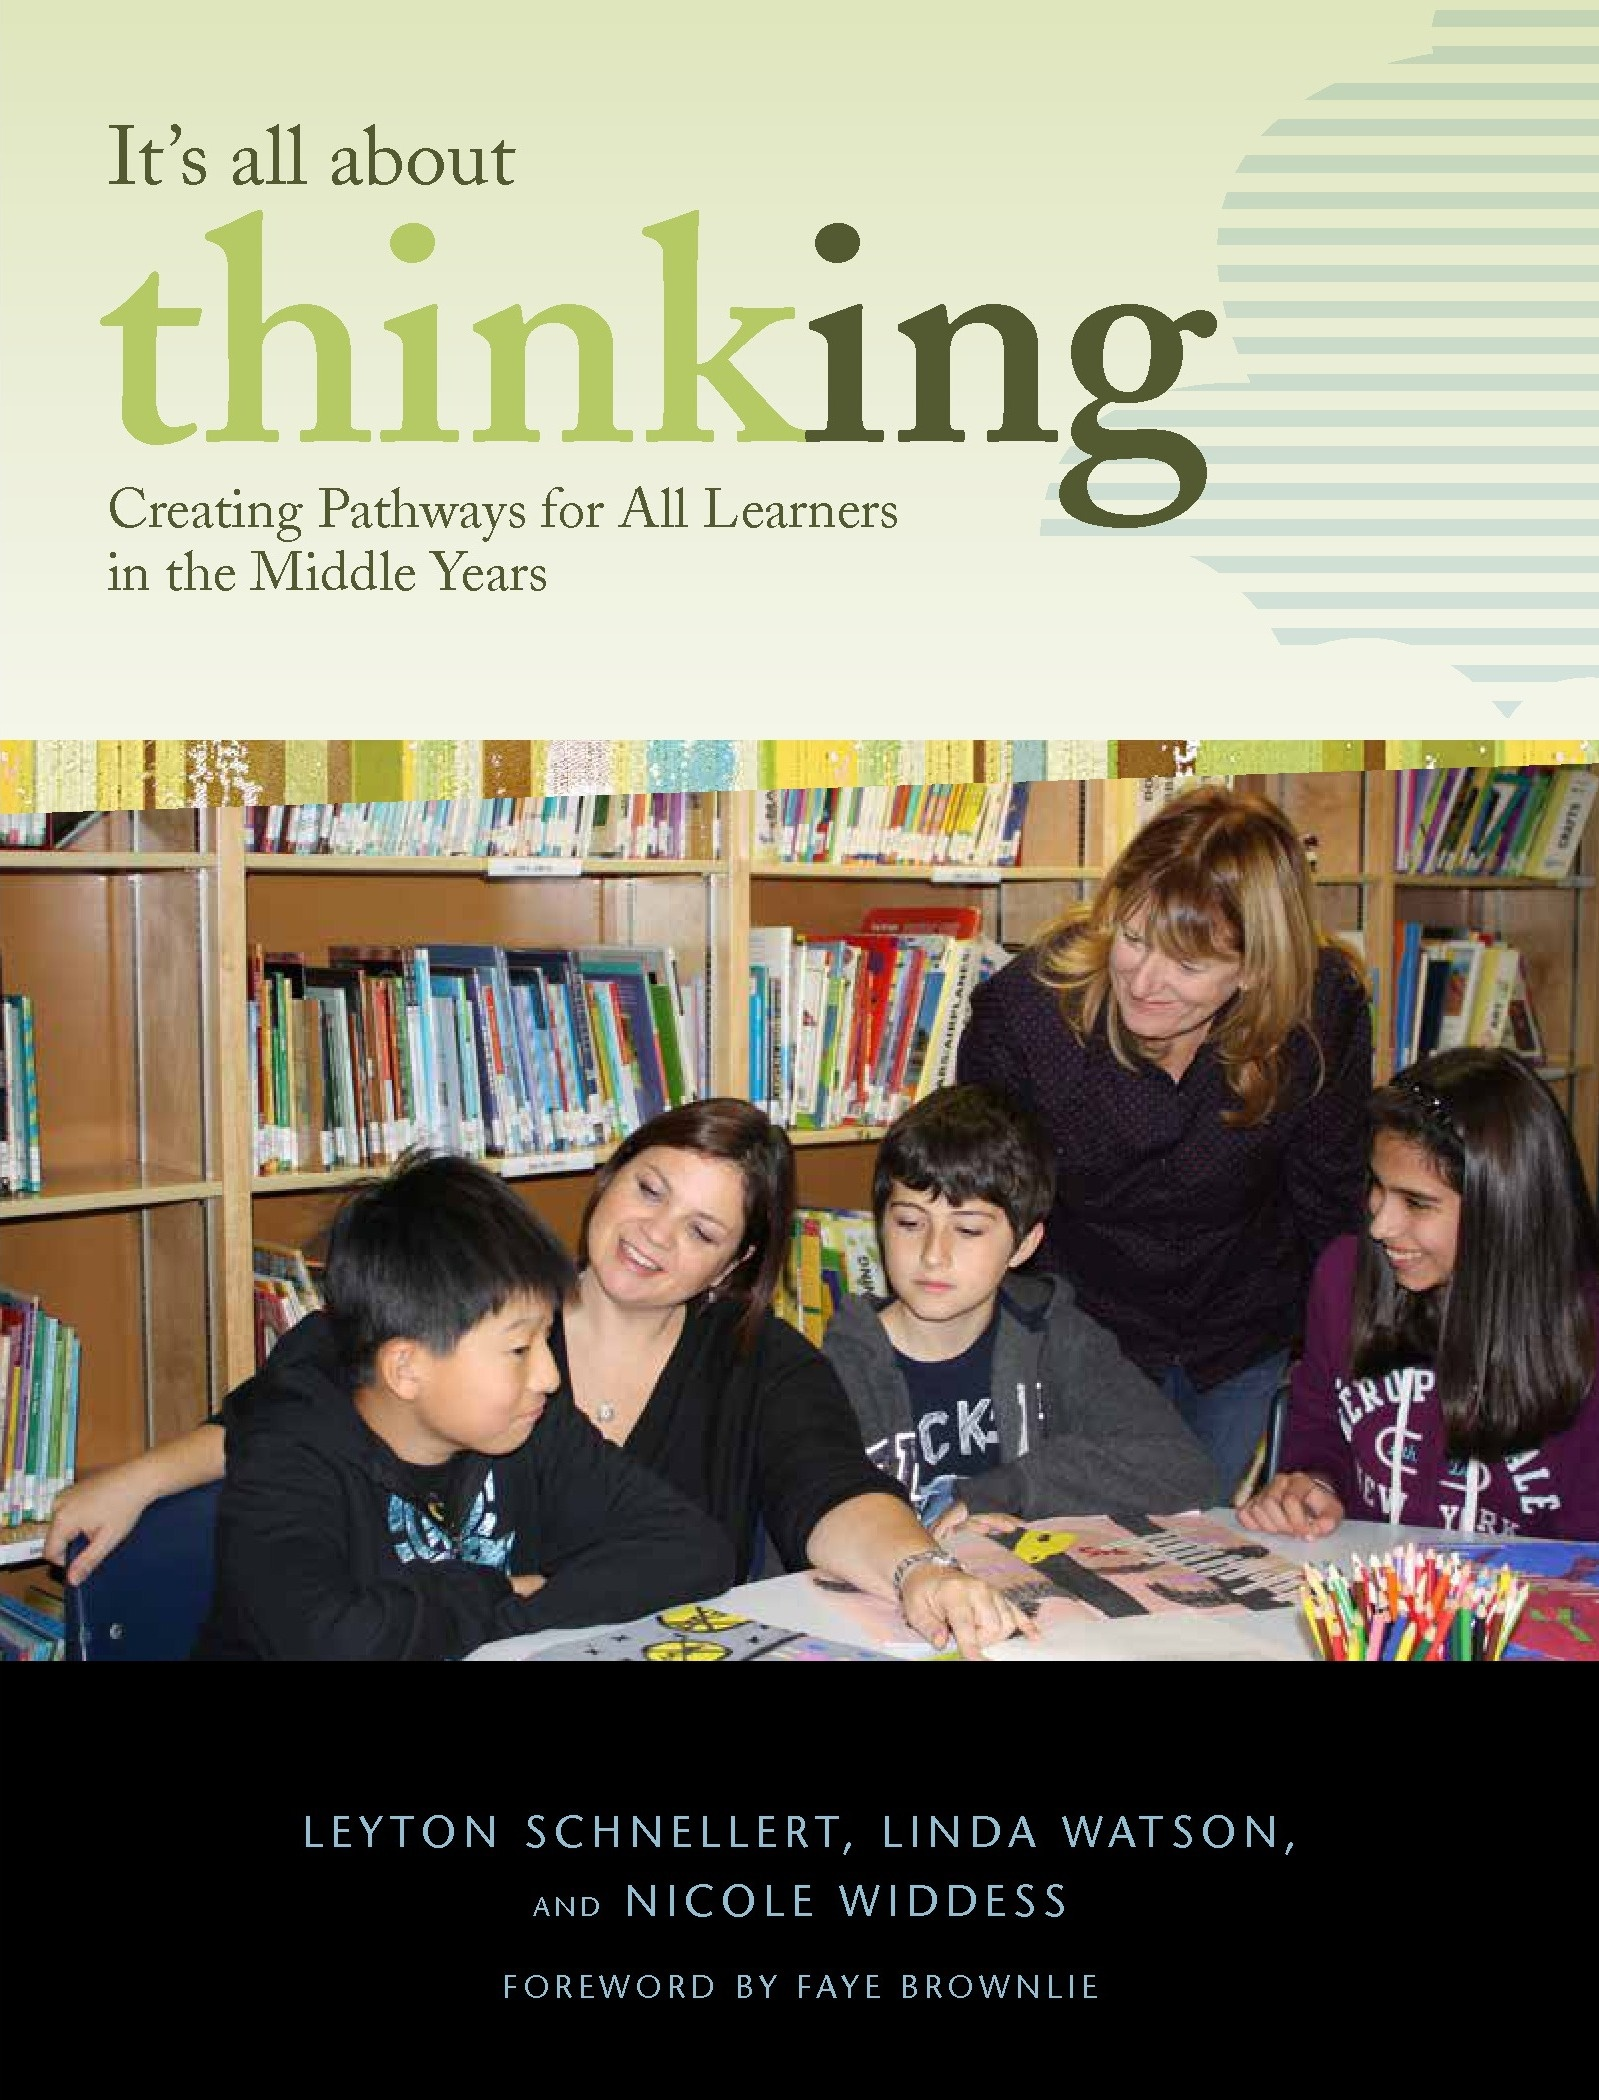 It's All About Thinking: Creating Pathways for All Learners in the Middle Years